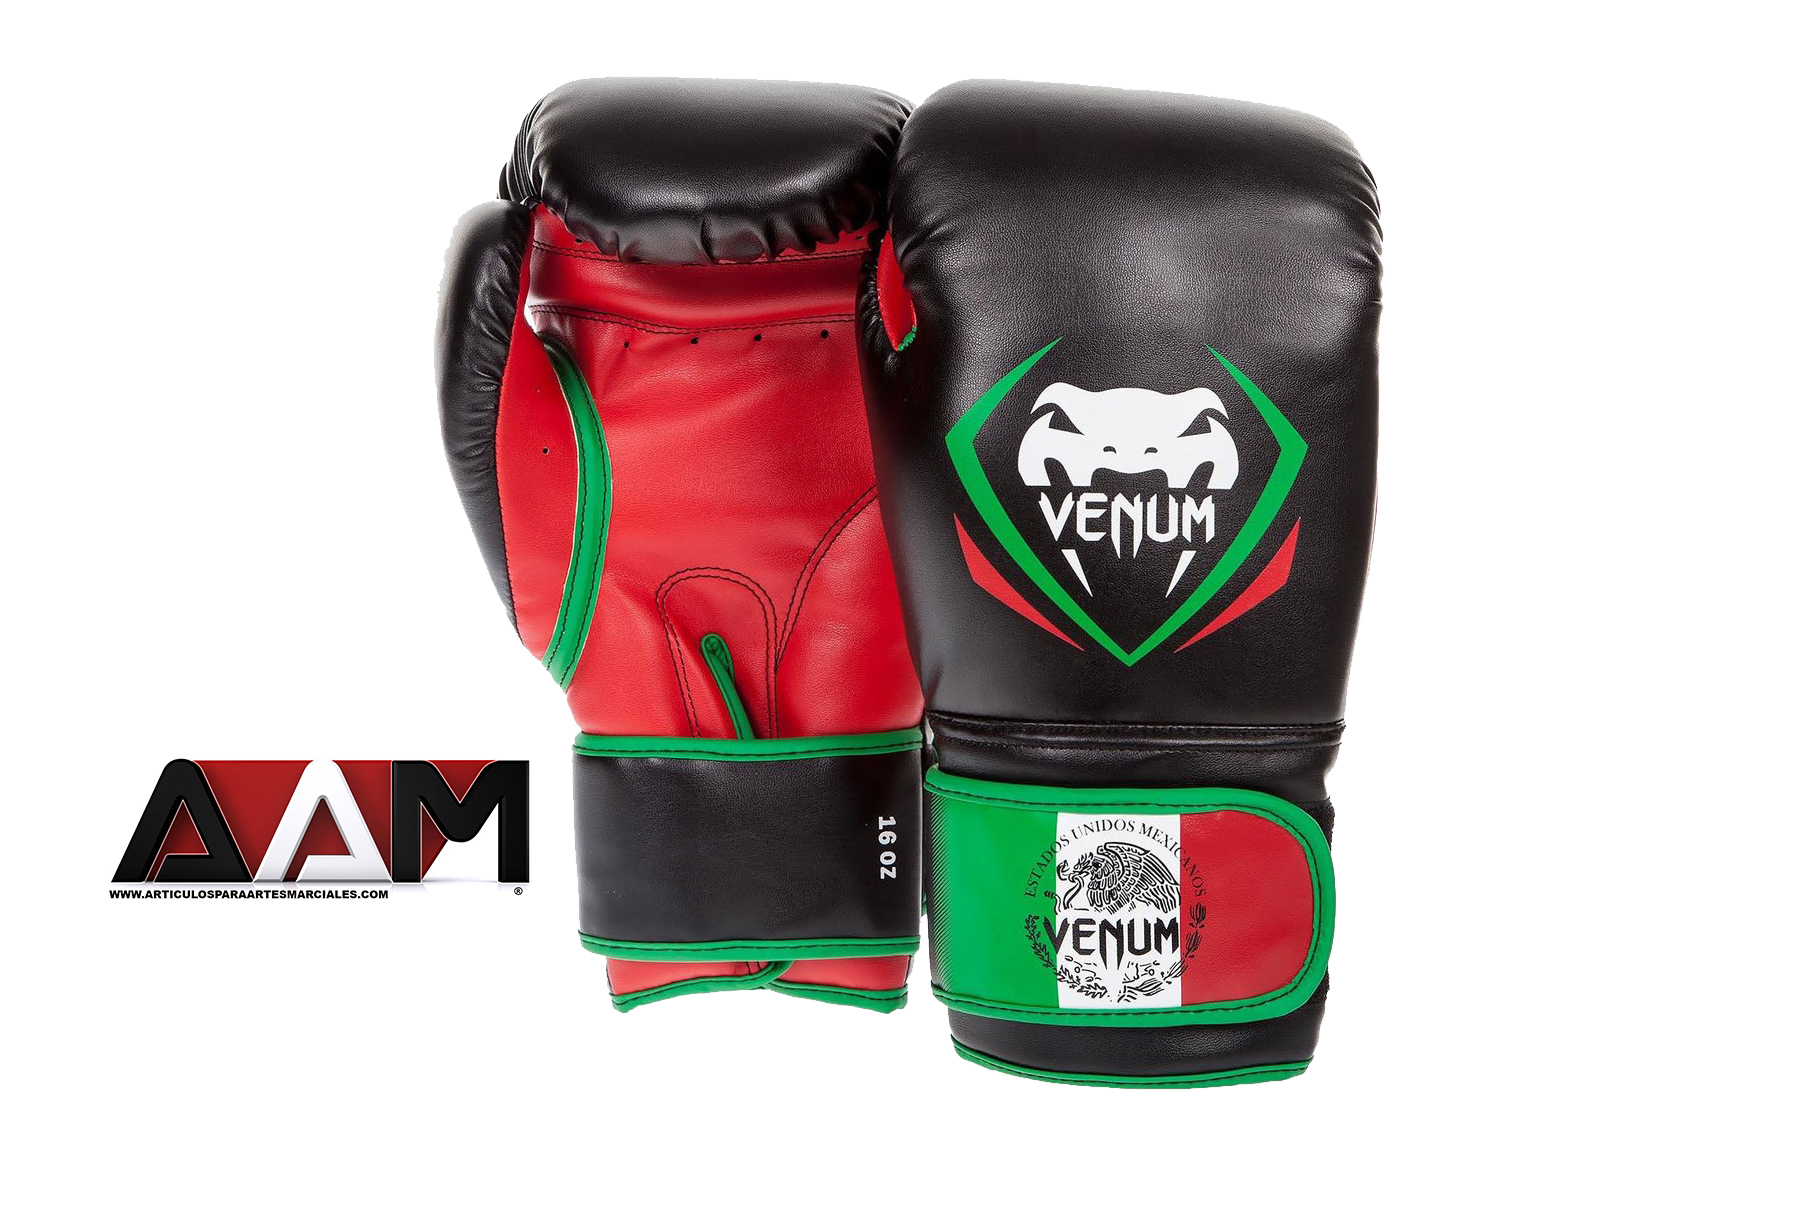 Venum contender series mexico boxing gloves 16 oz